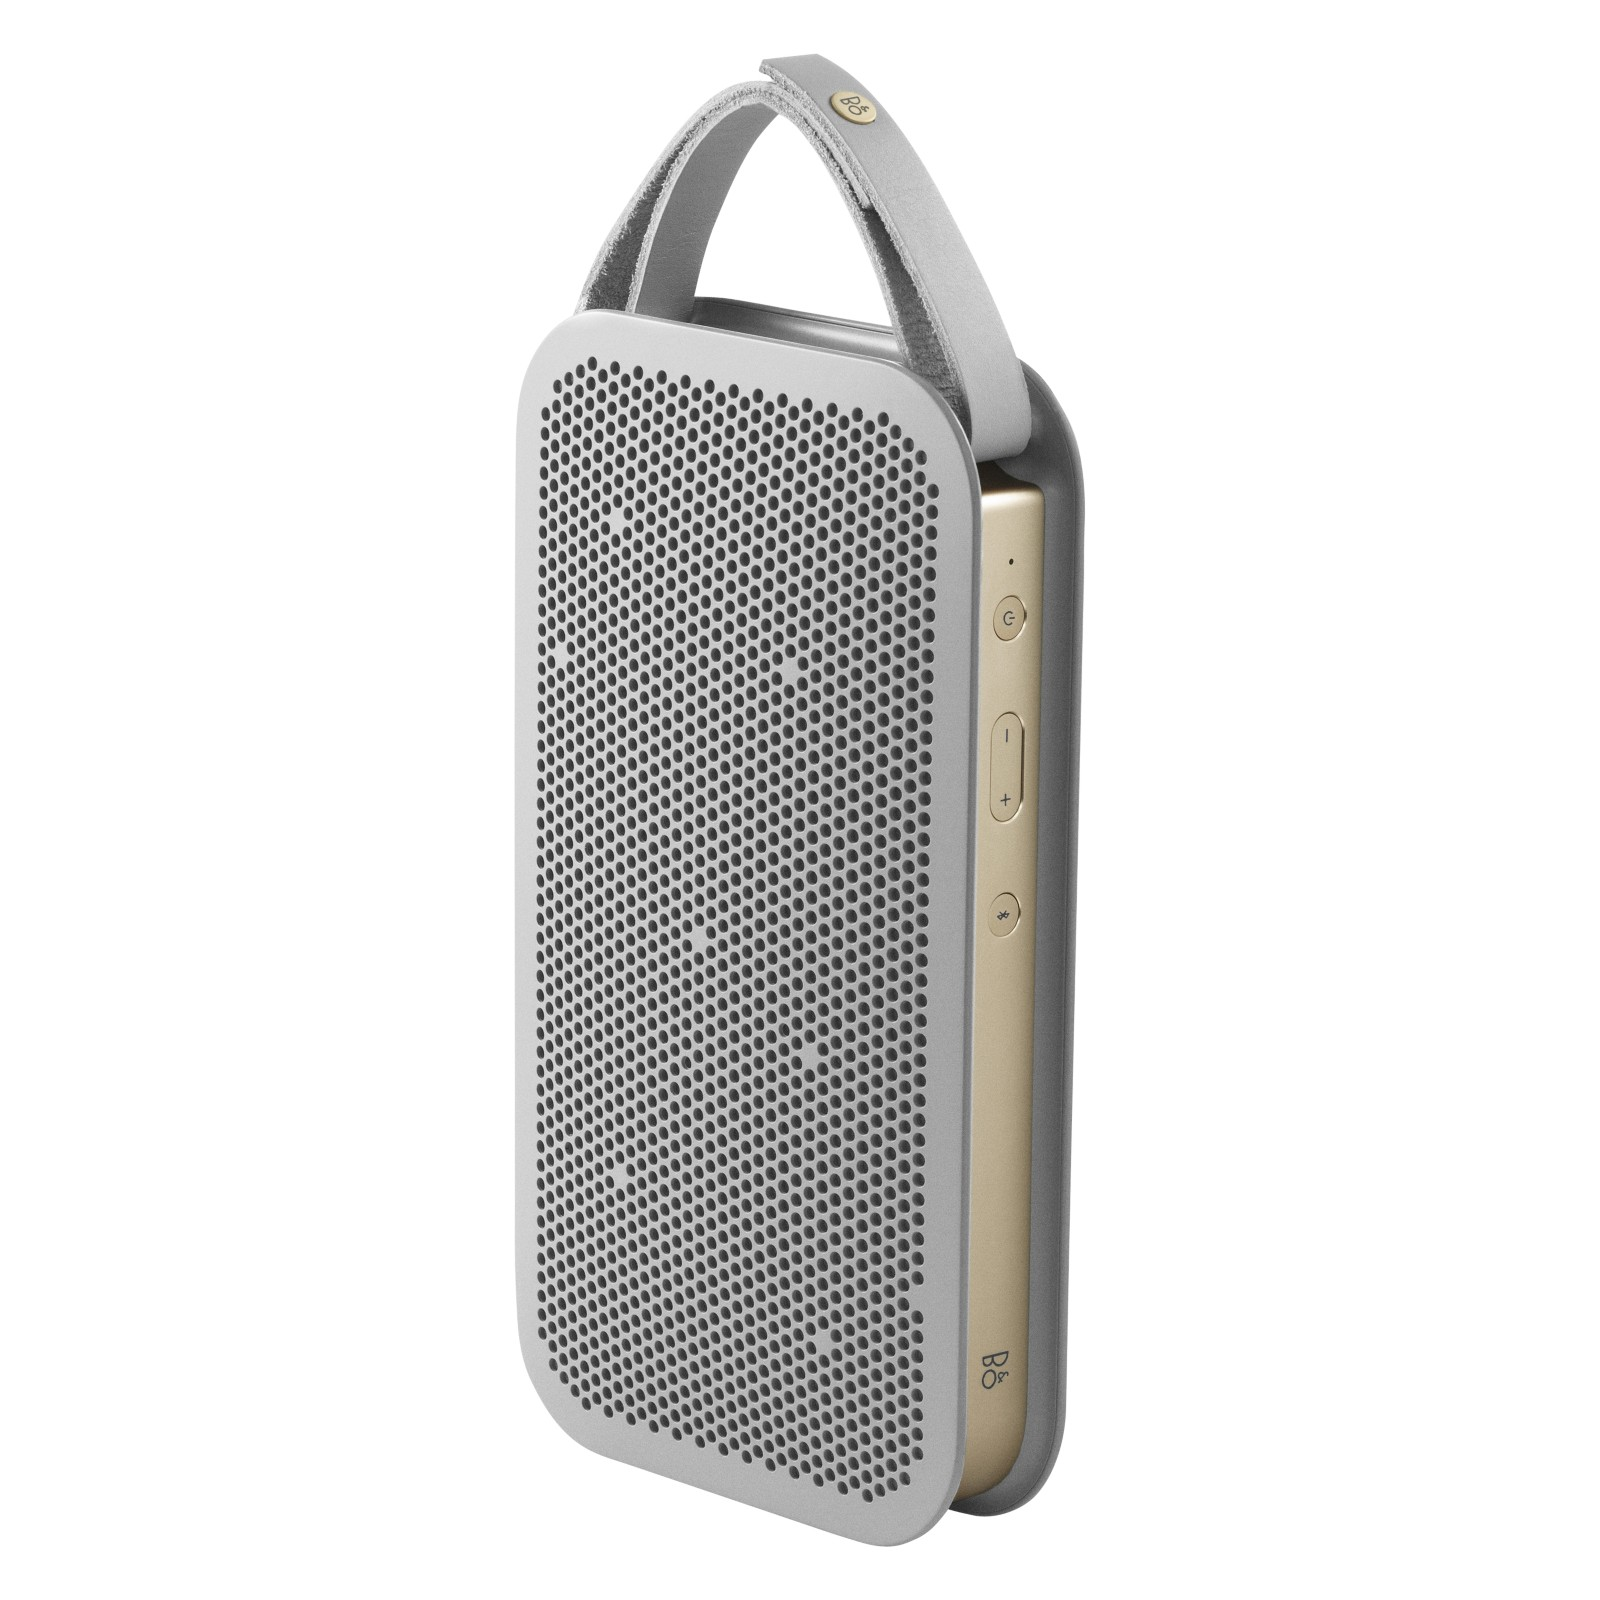 B&O PLAY by Bang & Olufsen Beoplay A2 Portable Bluetooth Speaker Champagne Grey